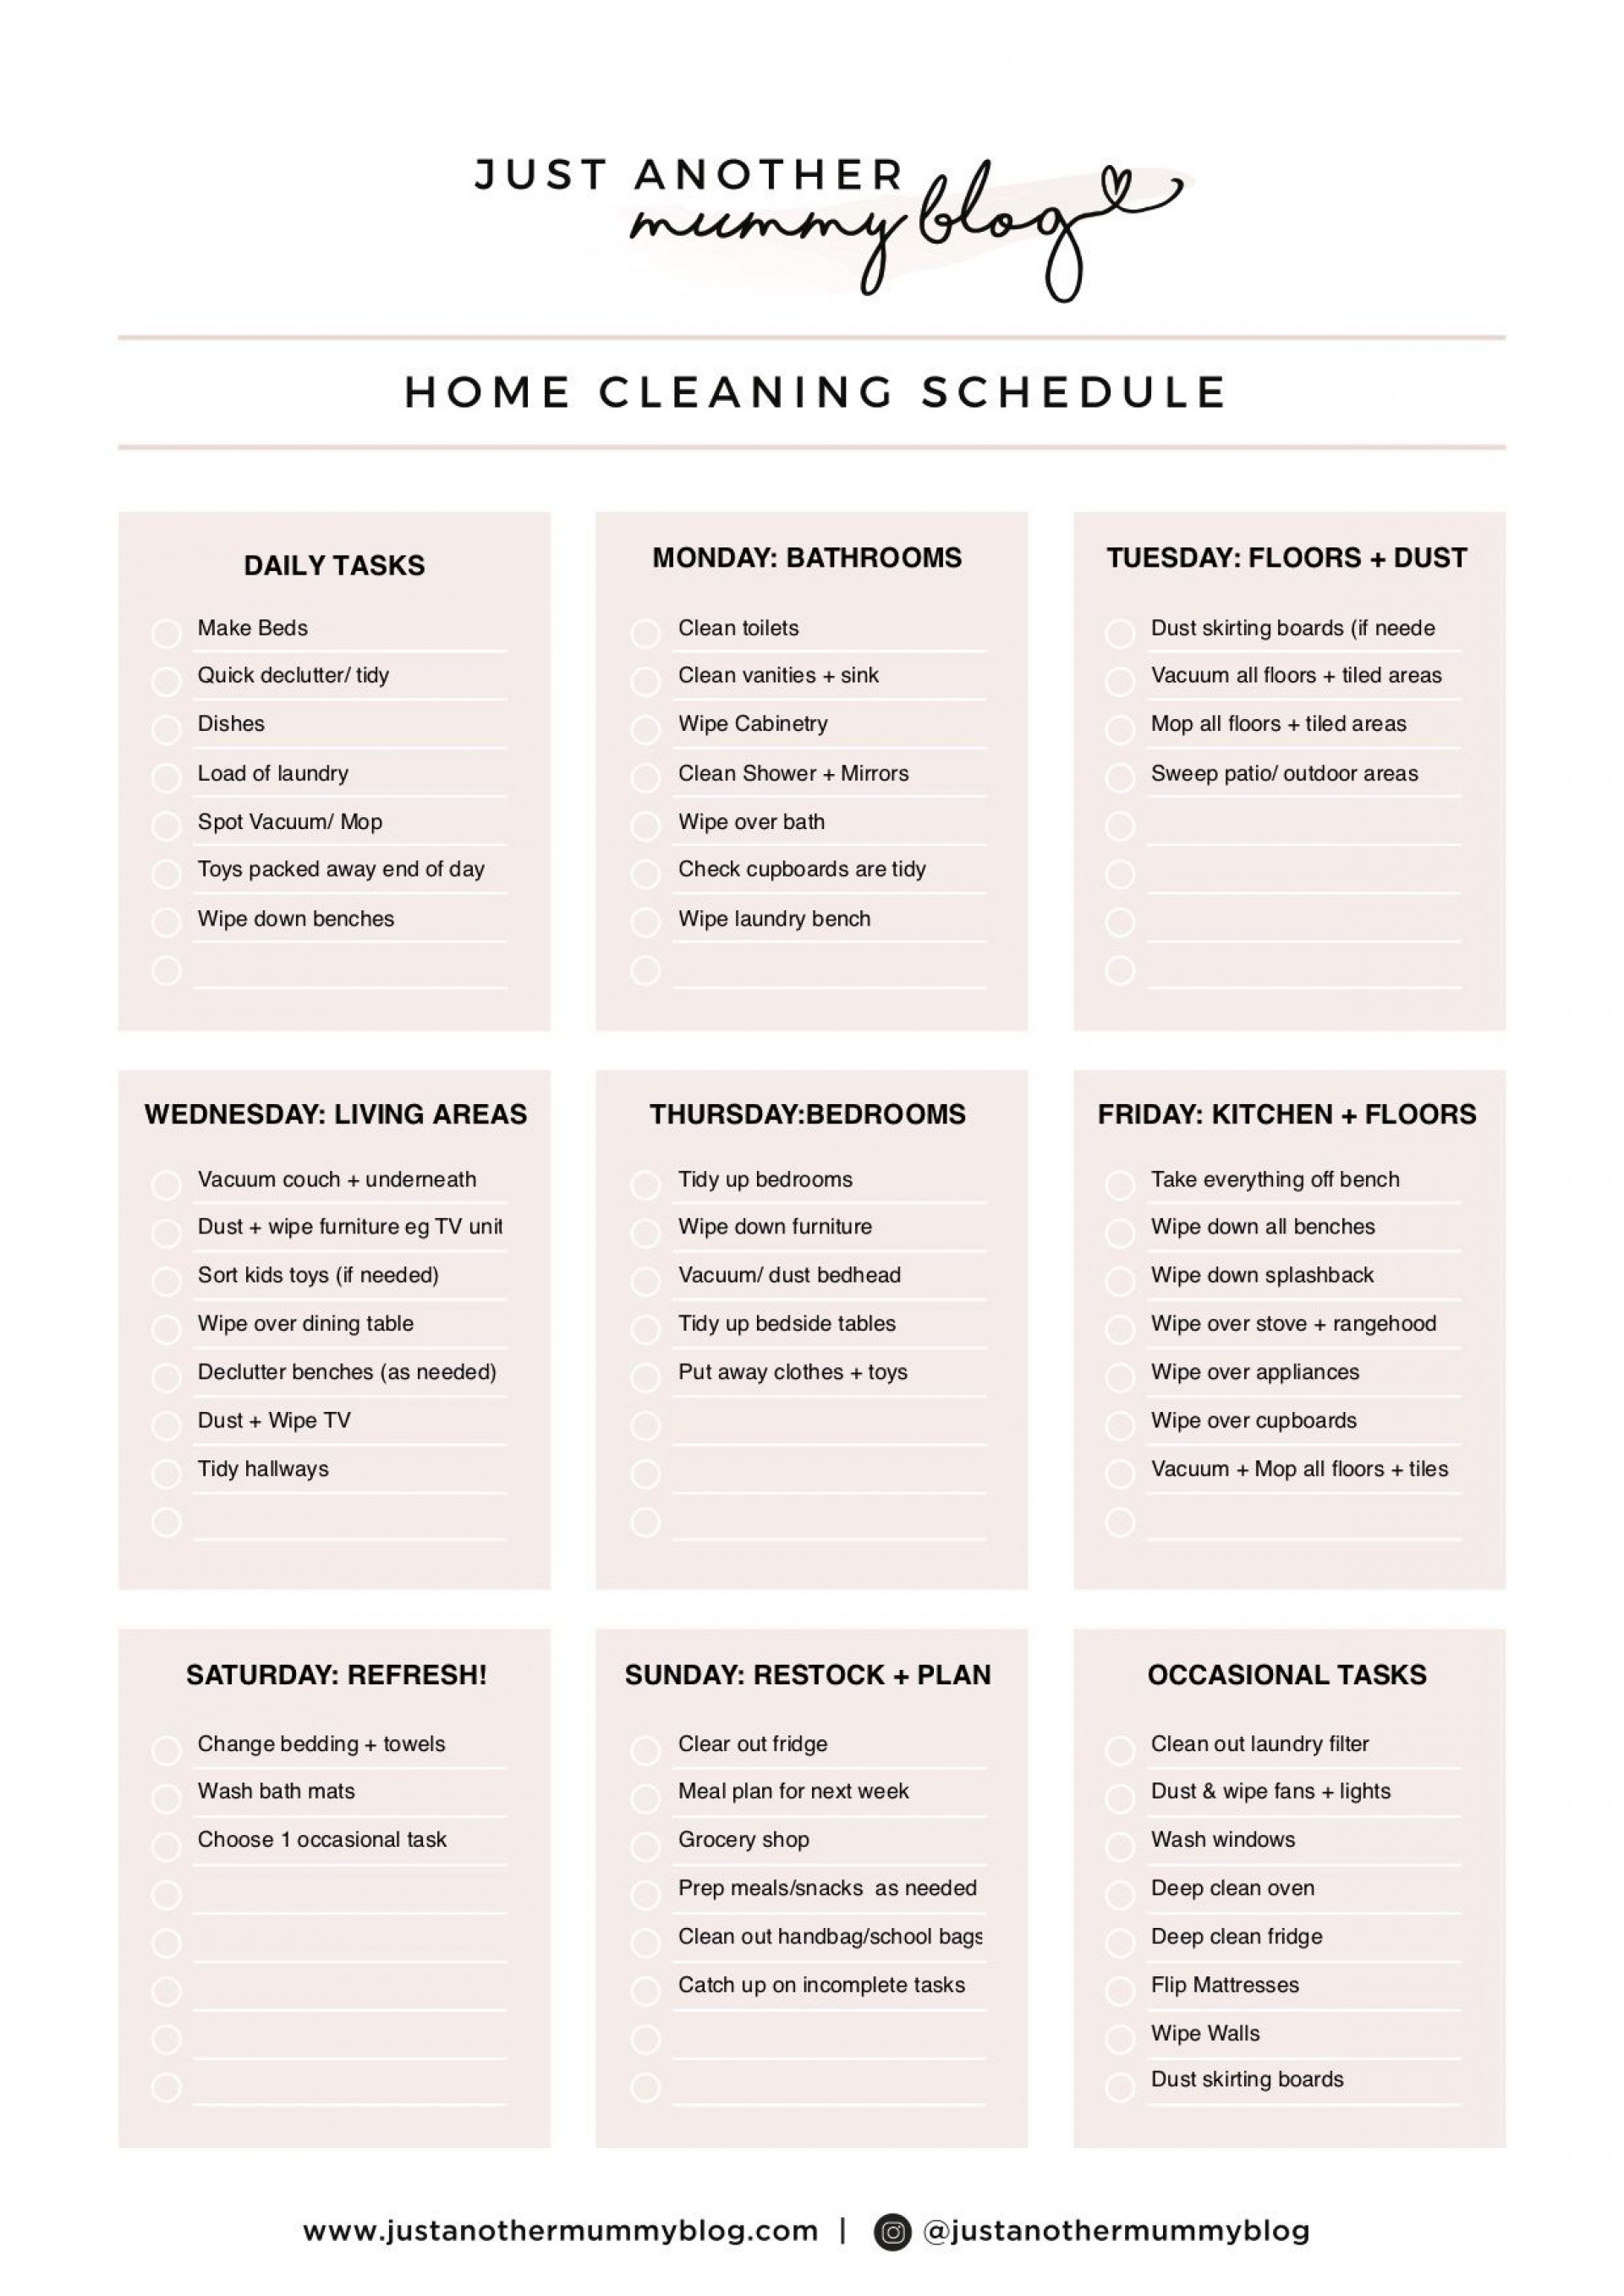 004 Sensational Care Home Cleaning Schedule Template Design  Kitchen1920